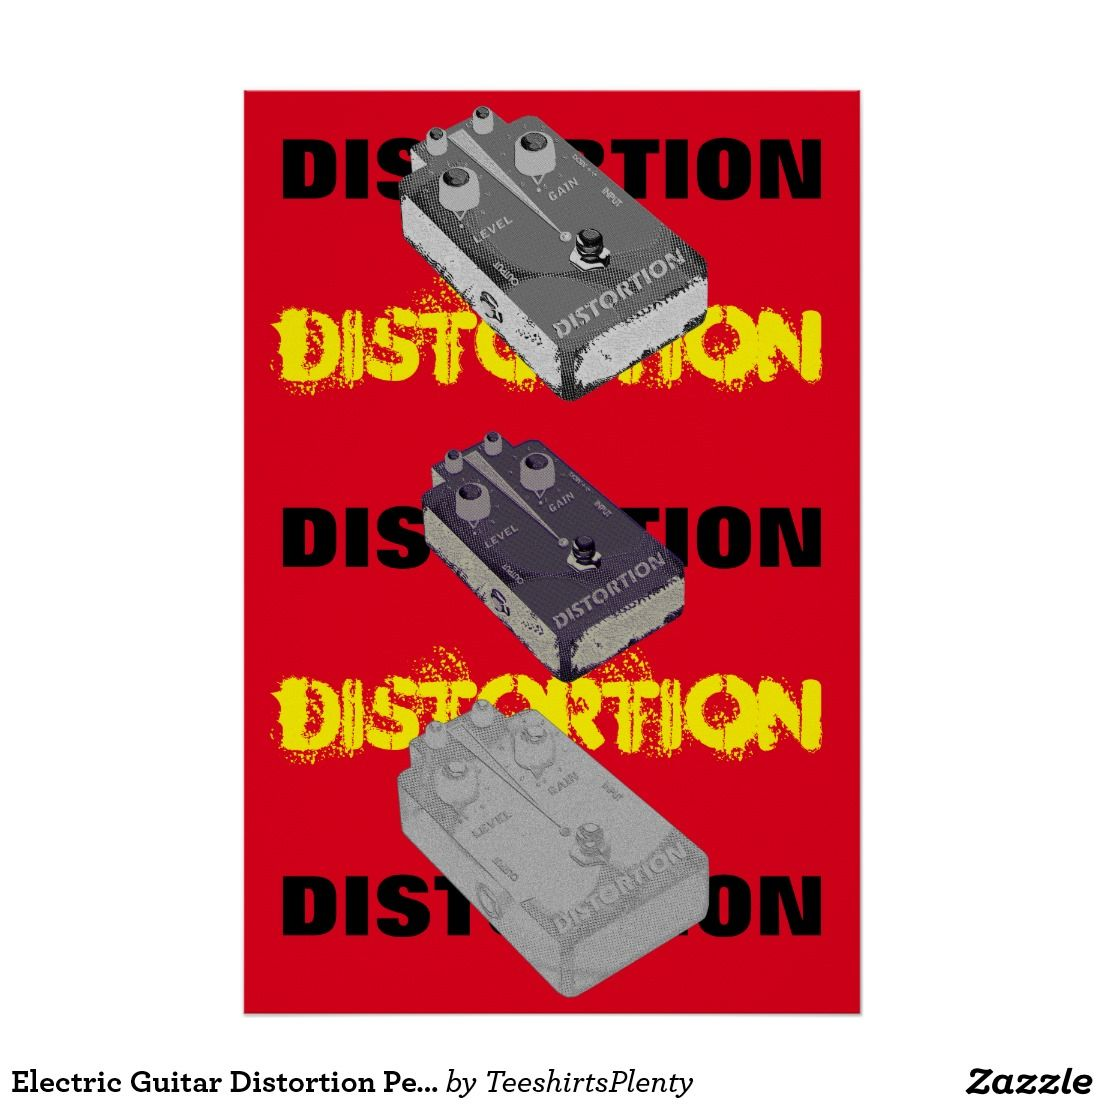 Electric Guitar Distortion Pedal Triple On Red Poster